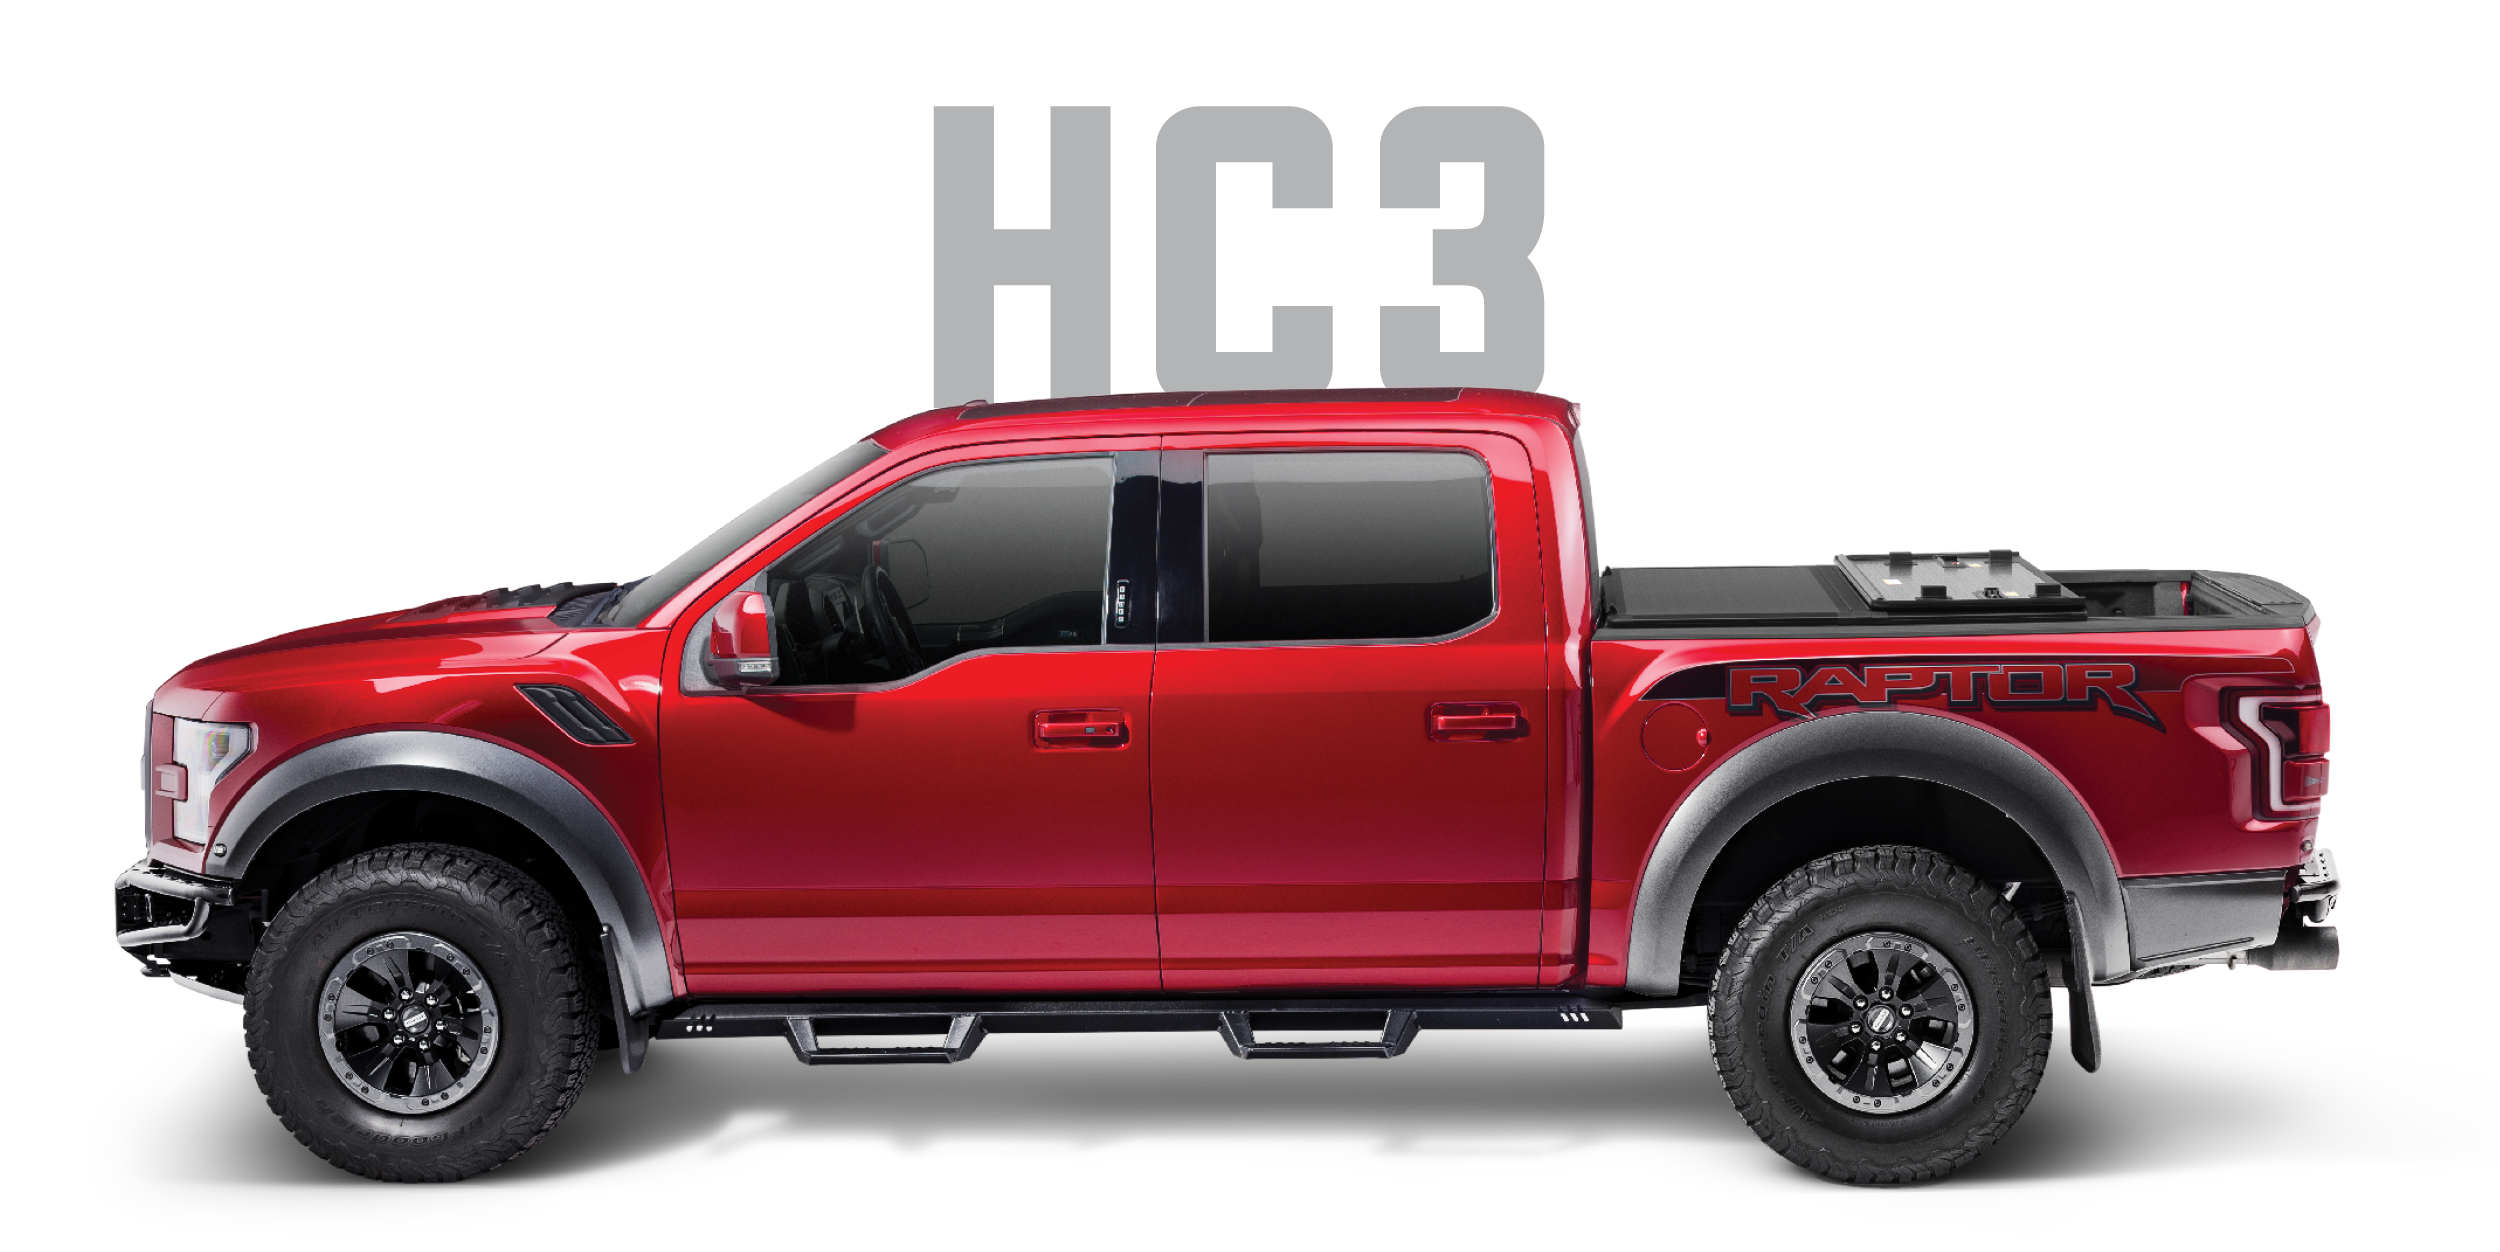 Rugged Cover Hc3 Premium Hard Folding Truck Bed Cover Rugged Liner Rugged